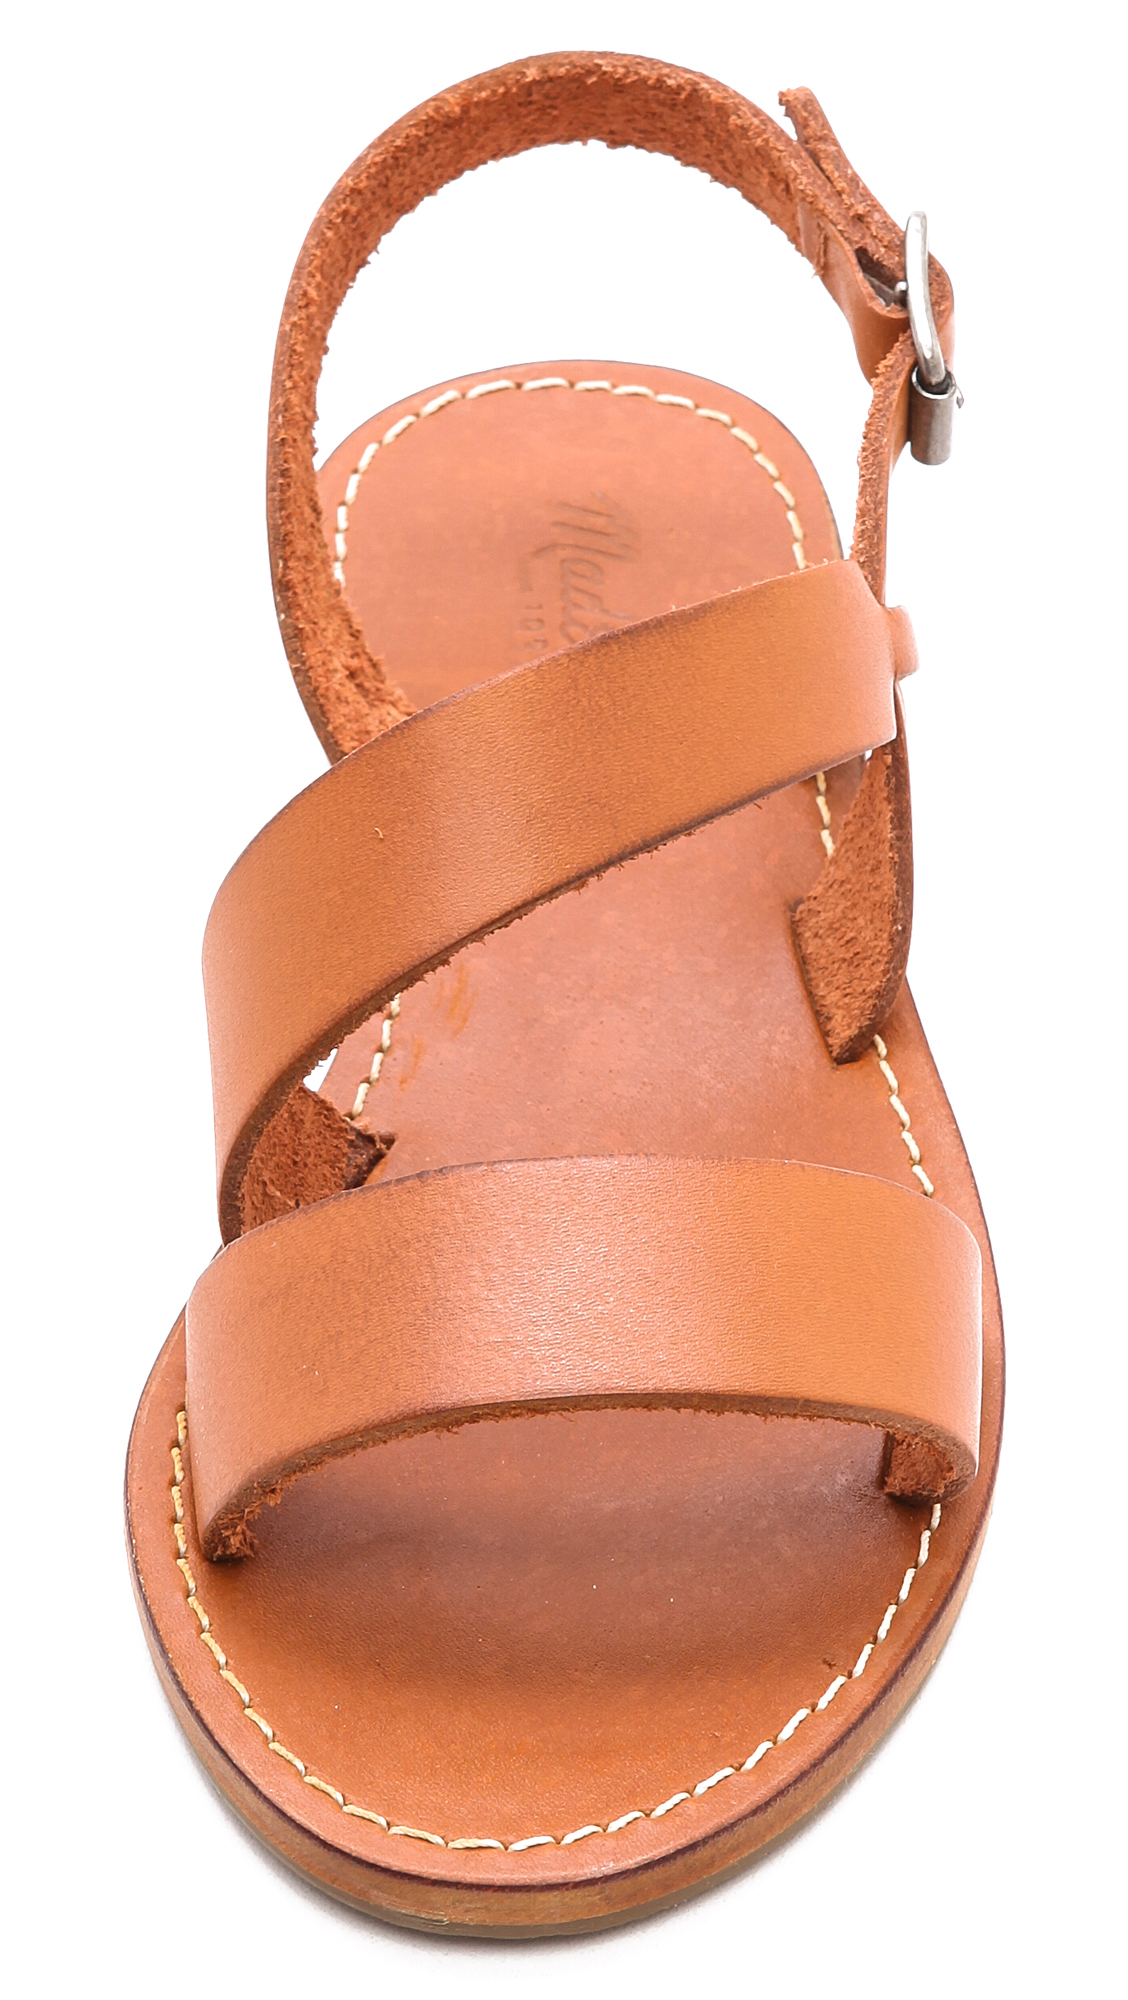 5e10976b63d855 Lyst - Madewell Slingback Sightseer Sandals Pecan in Orange